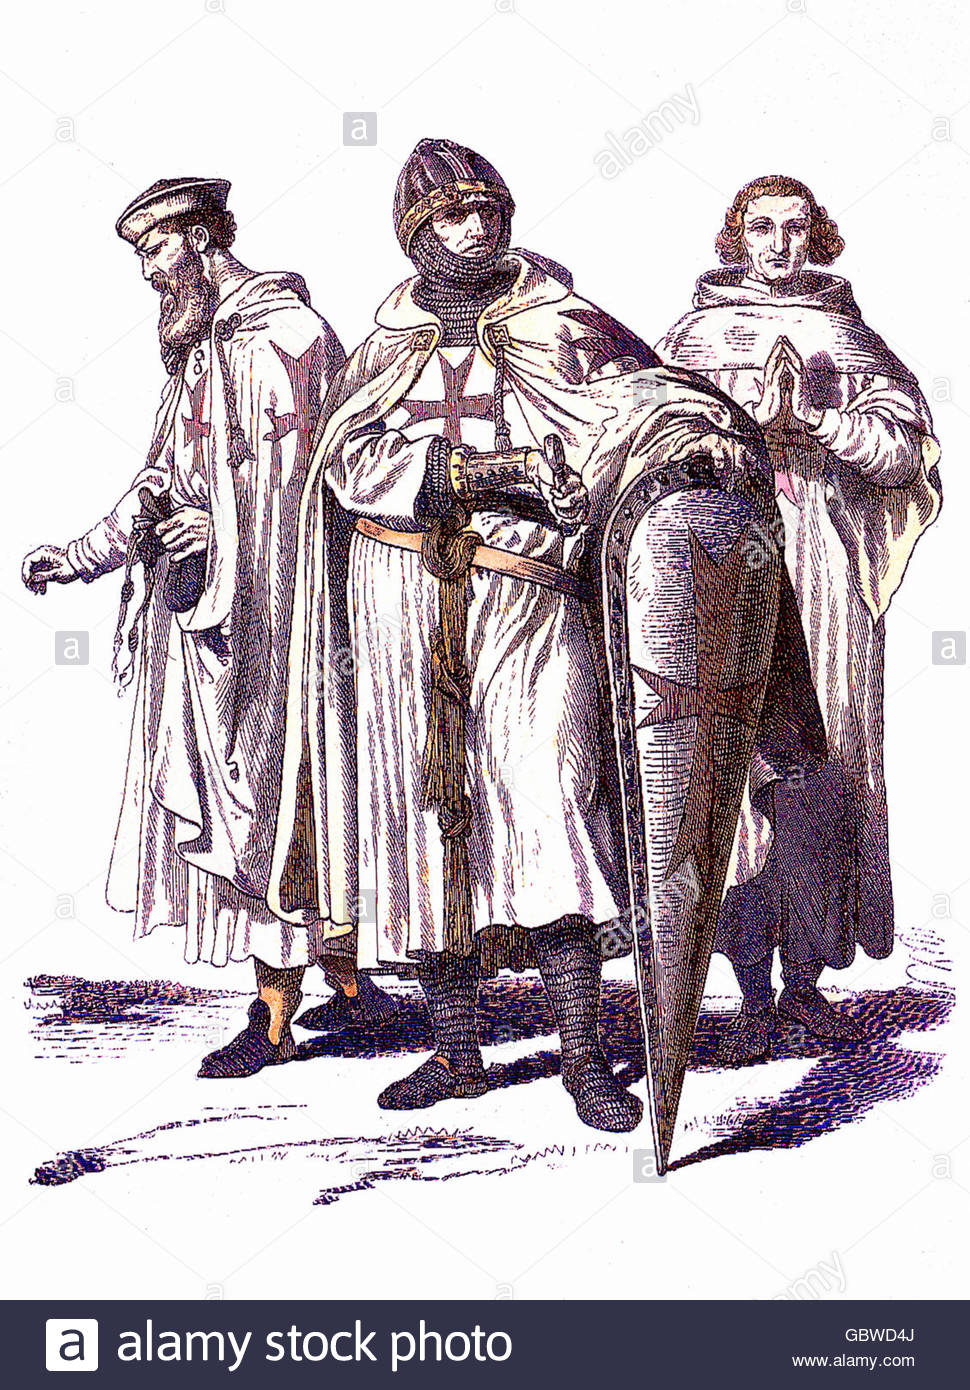 Middle Ages, knight's orders, Knights Templar, (Pauperes commilitones Christi templique salomonis, founded in - Stock Image